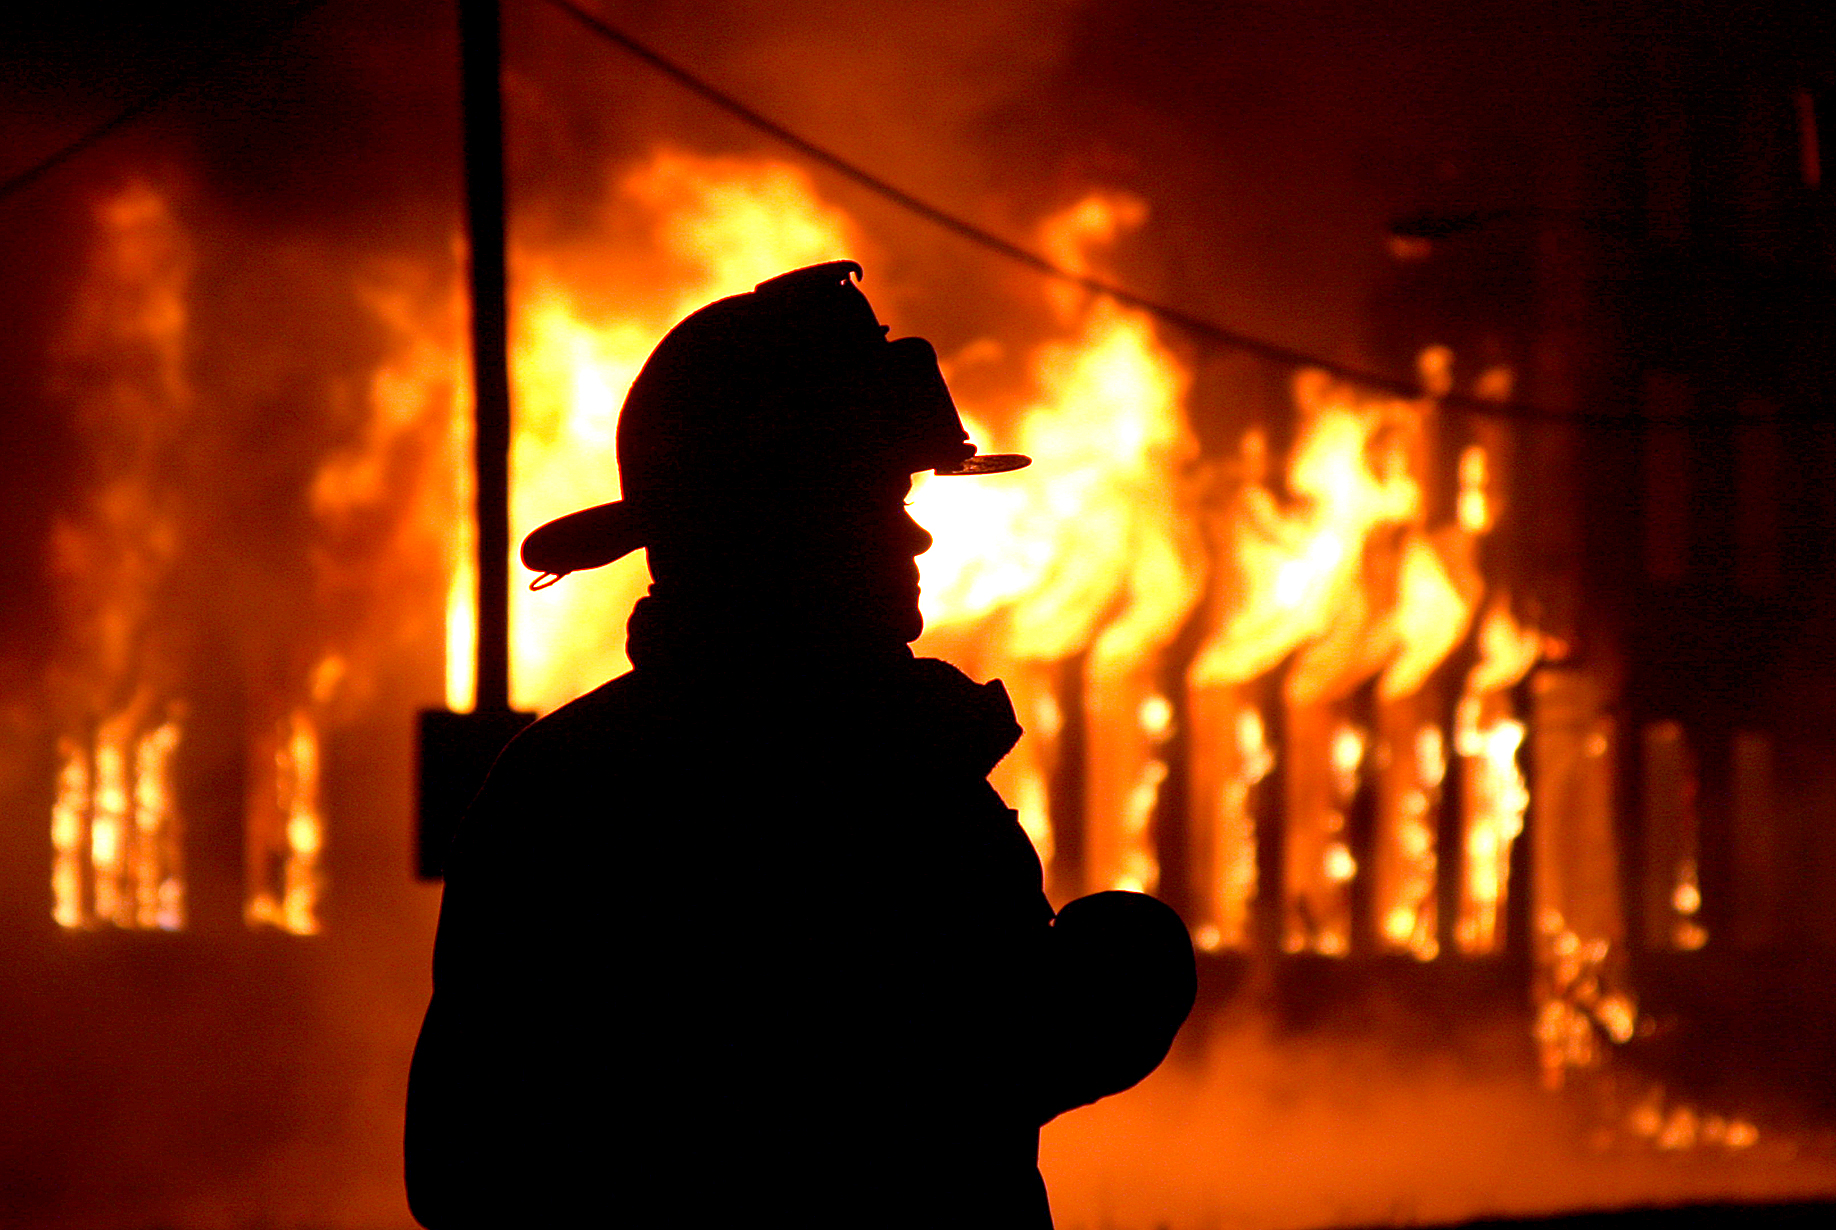 Firefighters make American towns safe, www.greatamericanthings.net